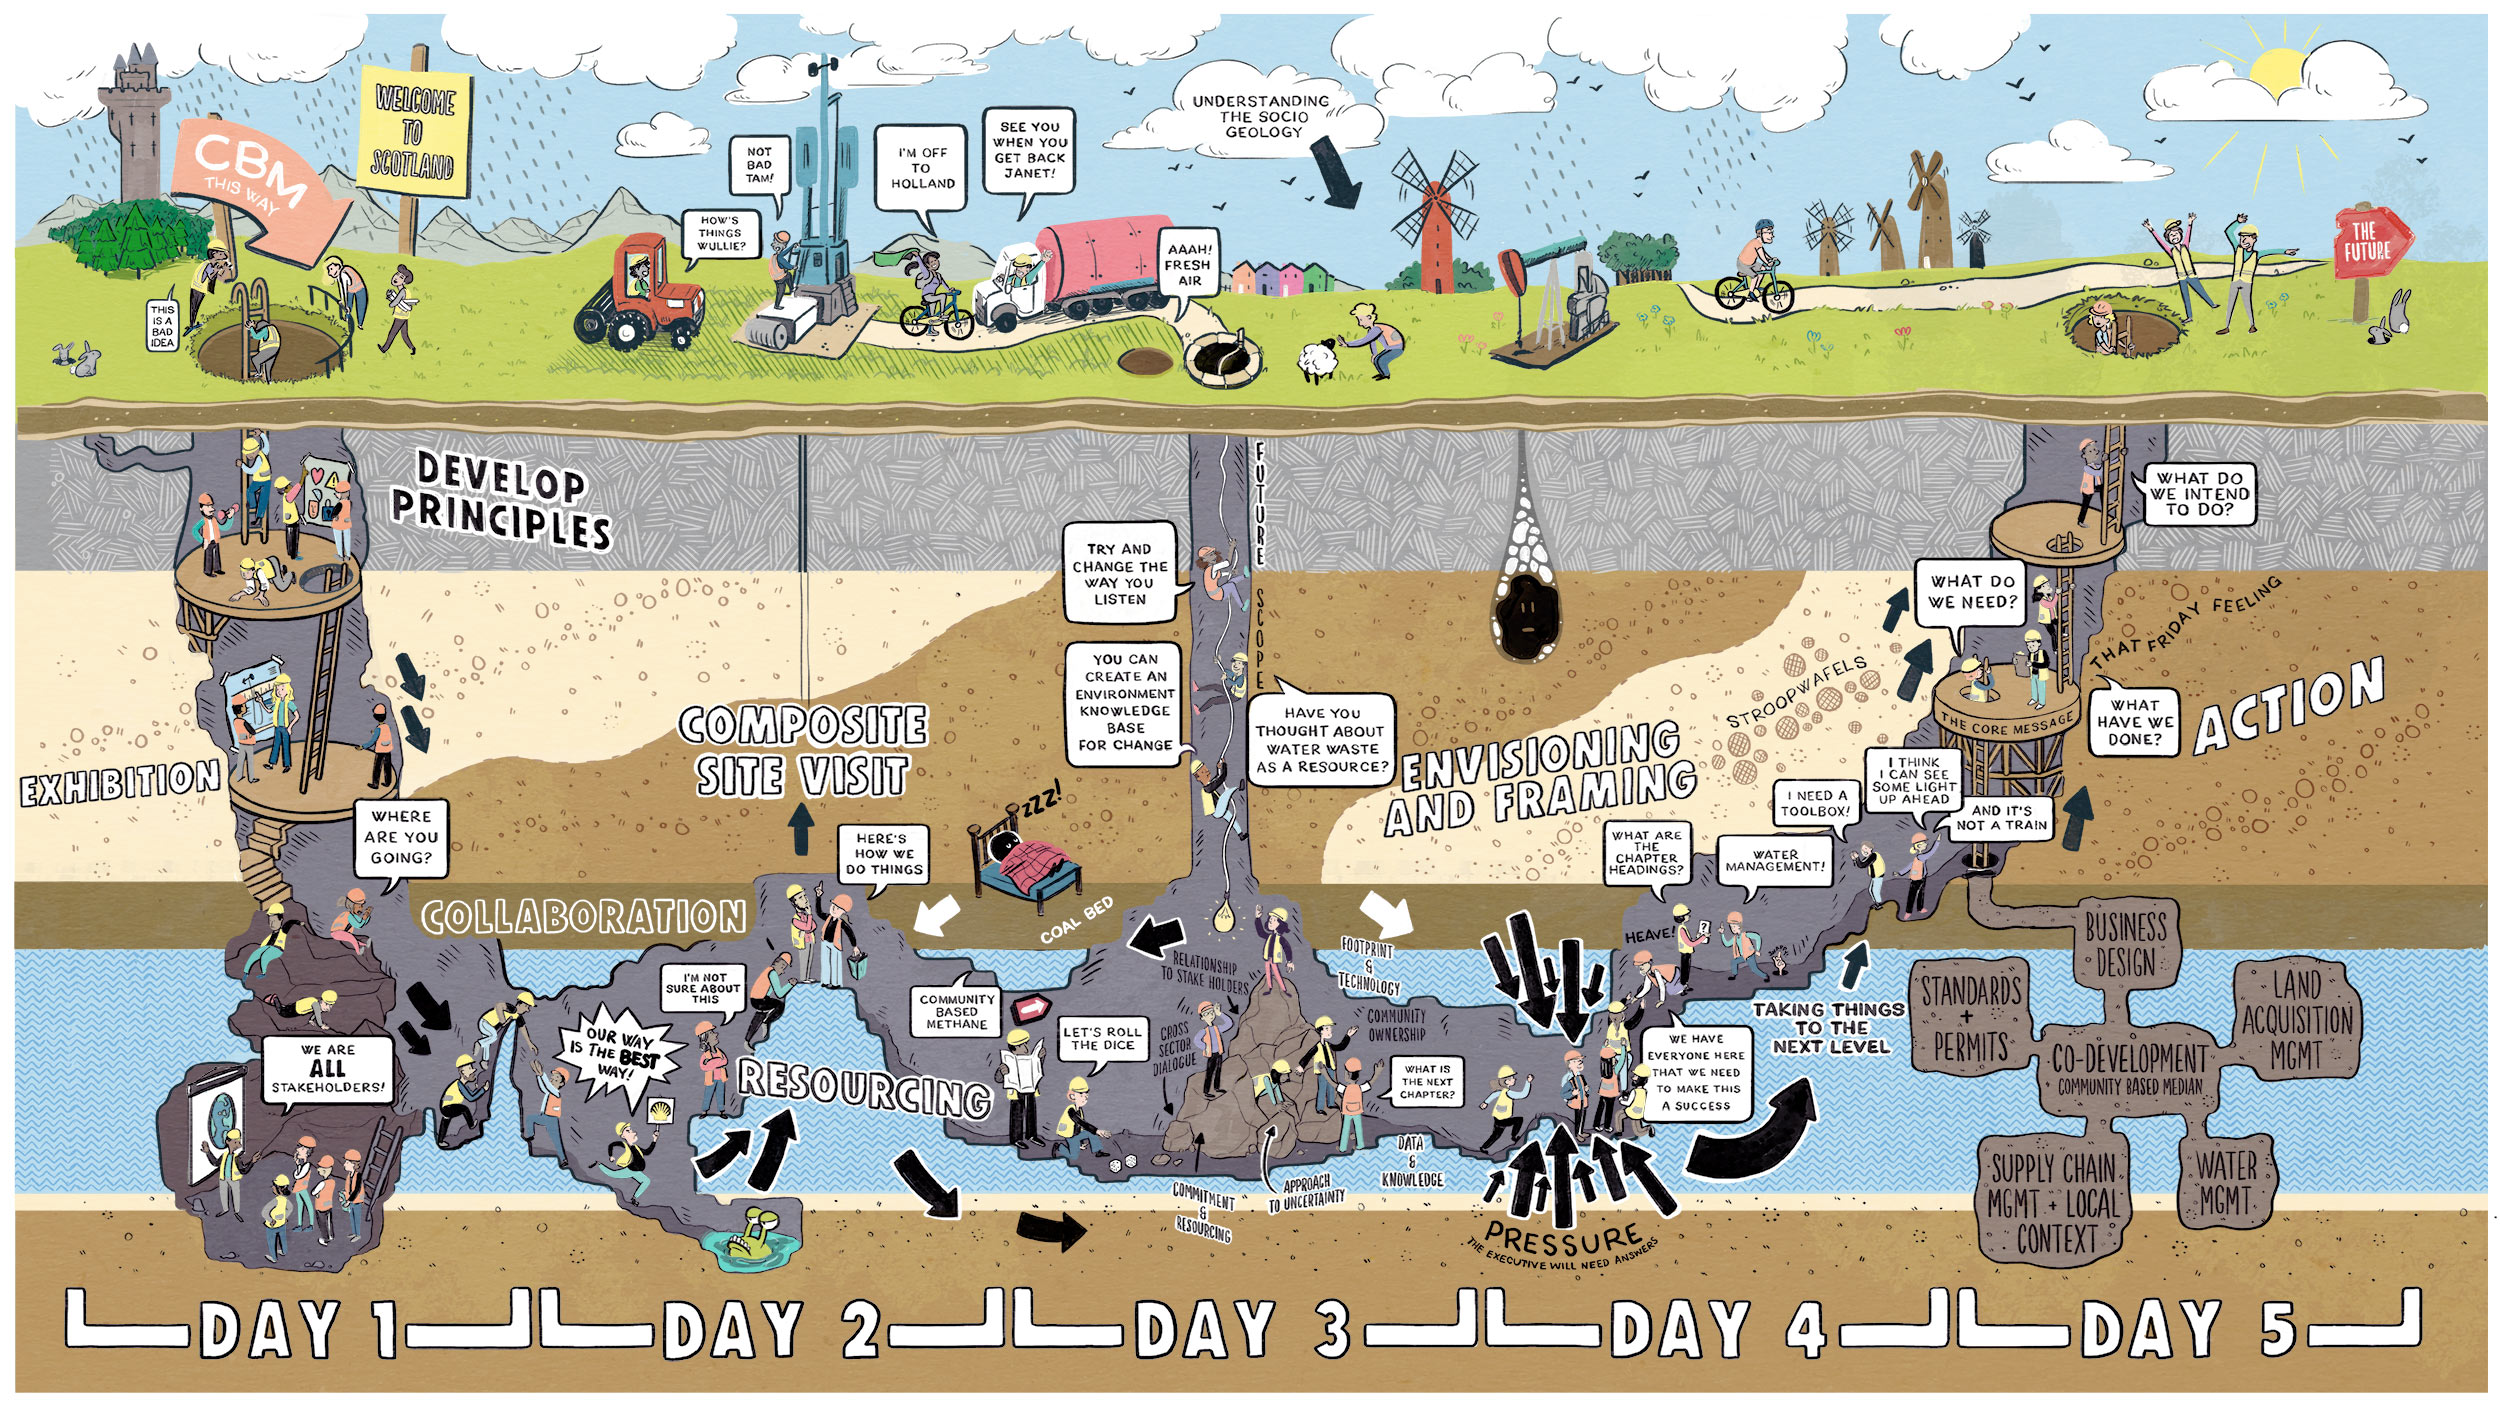 oil-industry-cognitive-big-picture.jpg